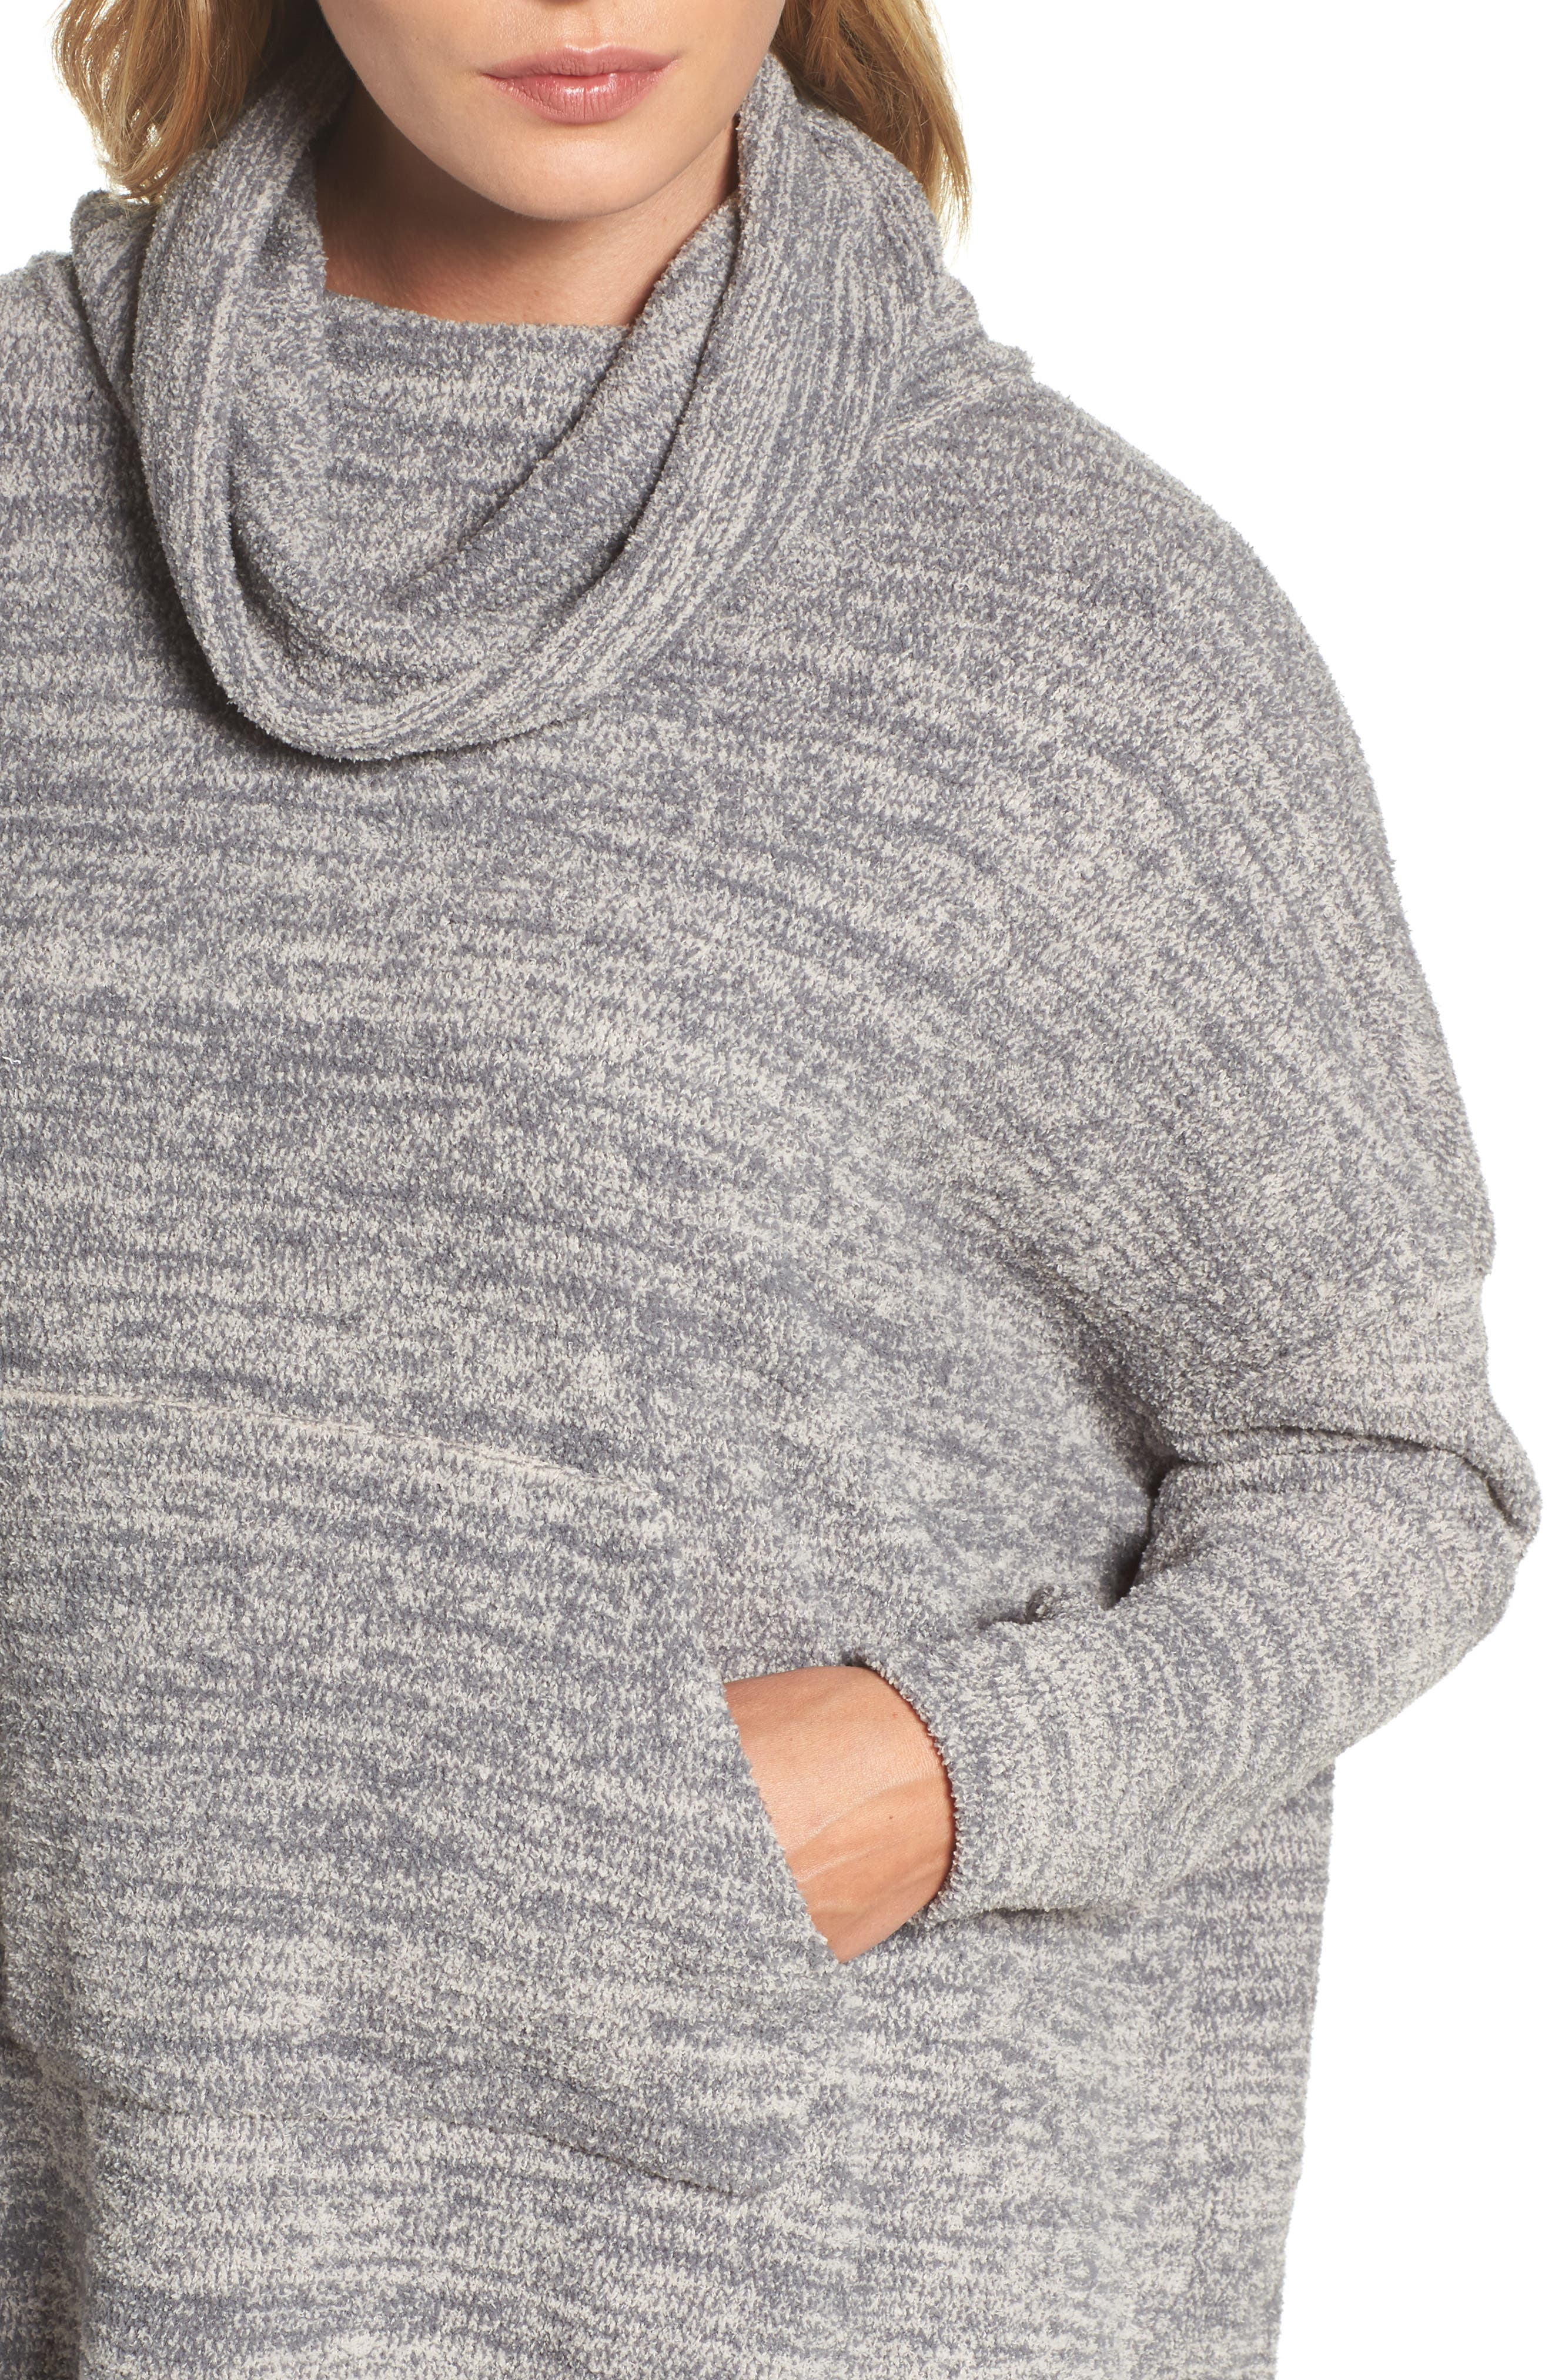 Cozychic<sup>®</sup> Lounge Pullover,                             Alternate thumbnail 4, color,                             GRAPHITE/ STONE HEATHERED